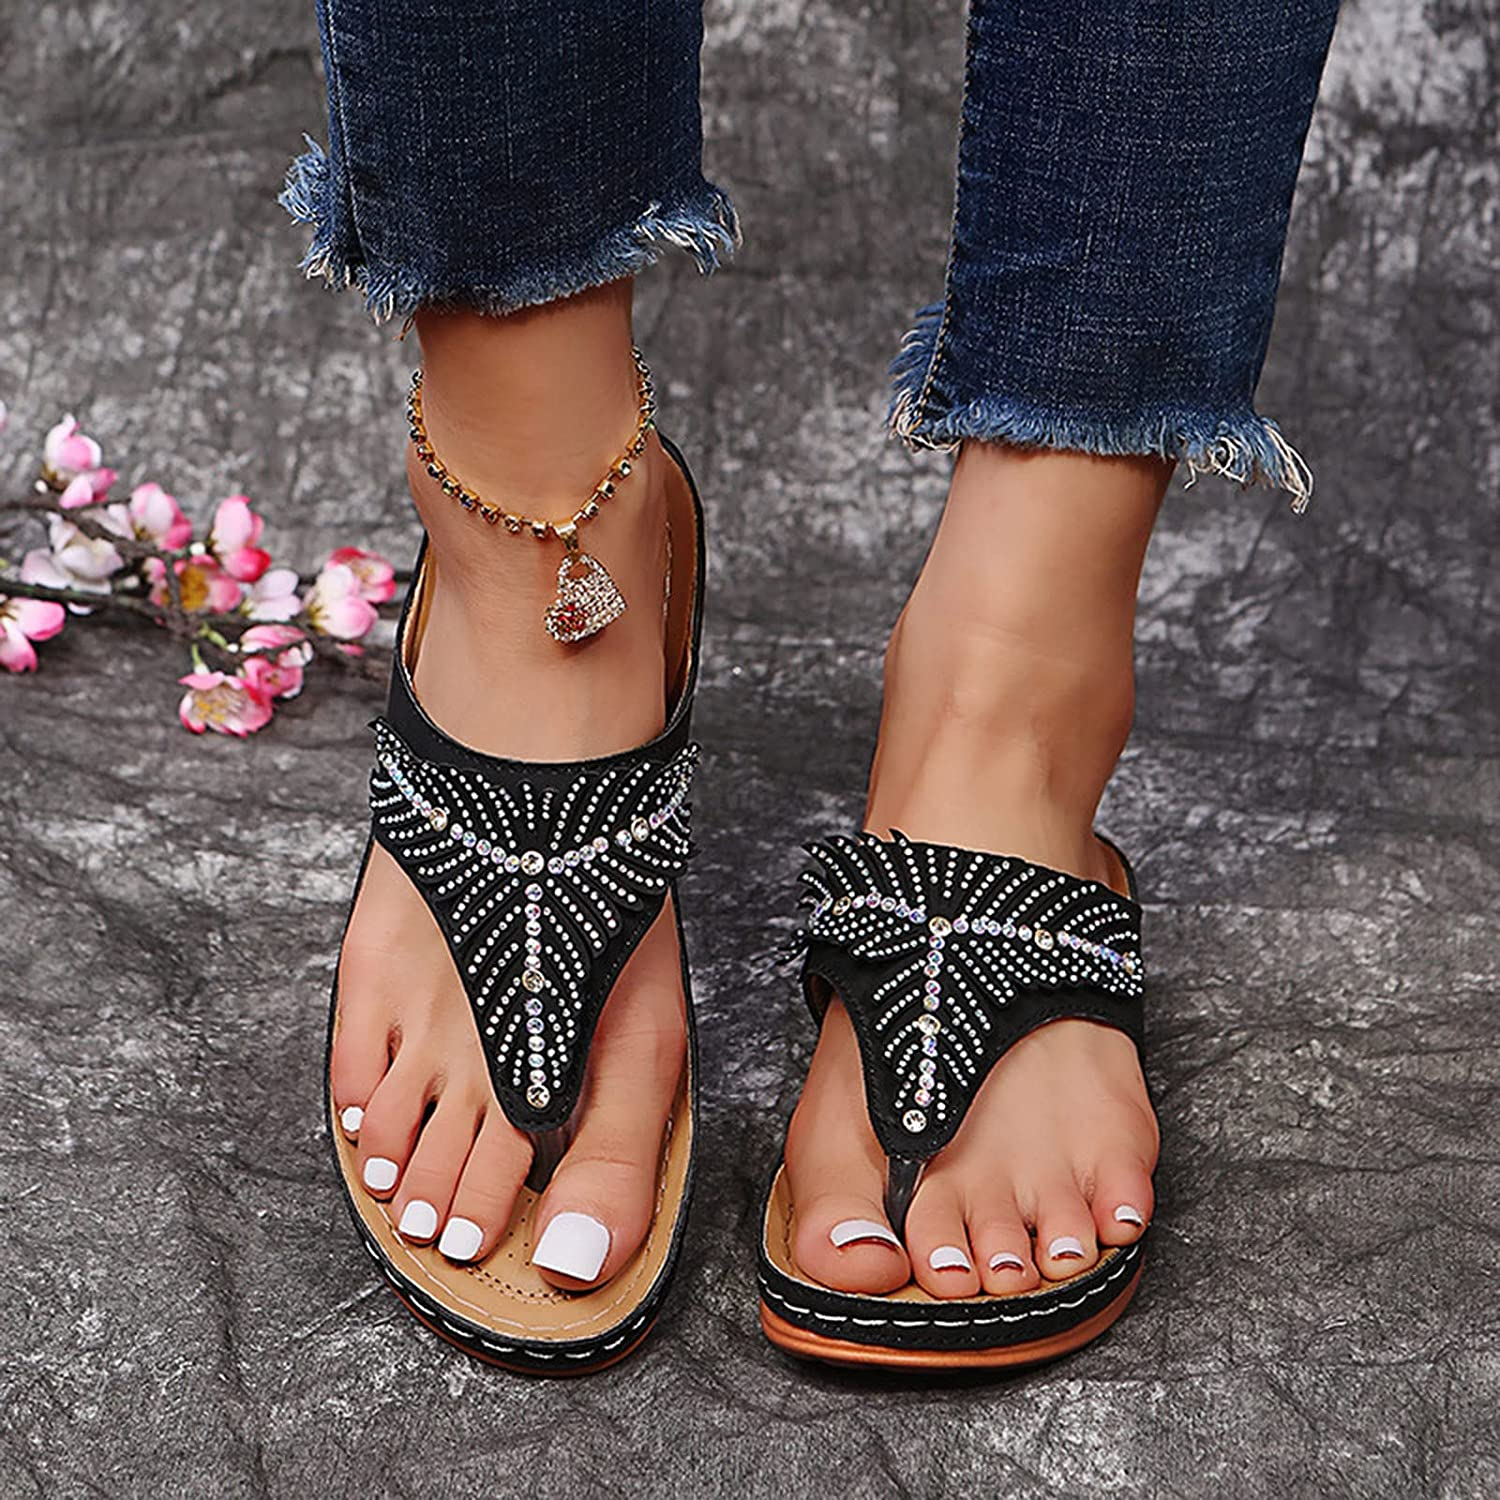 HHZY Mule Our shop most popular Latest item Clogs Shoes for Women Clip Flip To Summer Thongs Flops